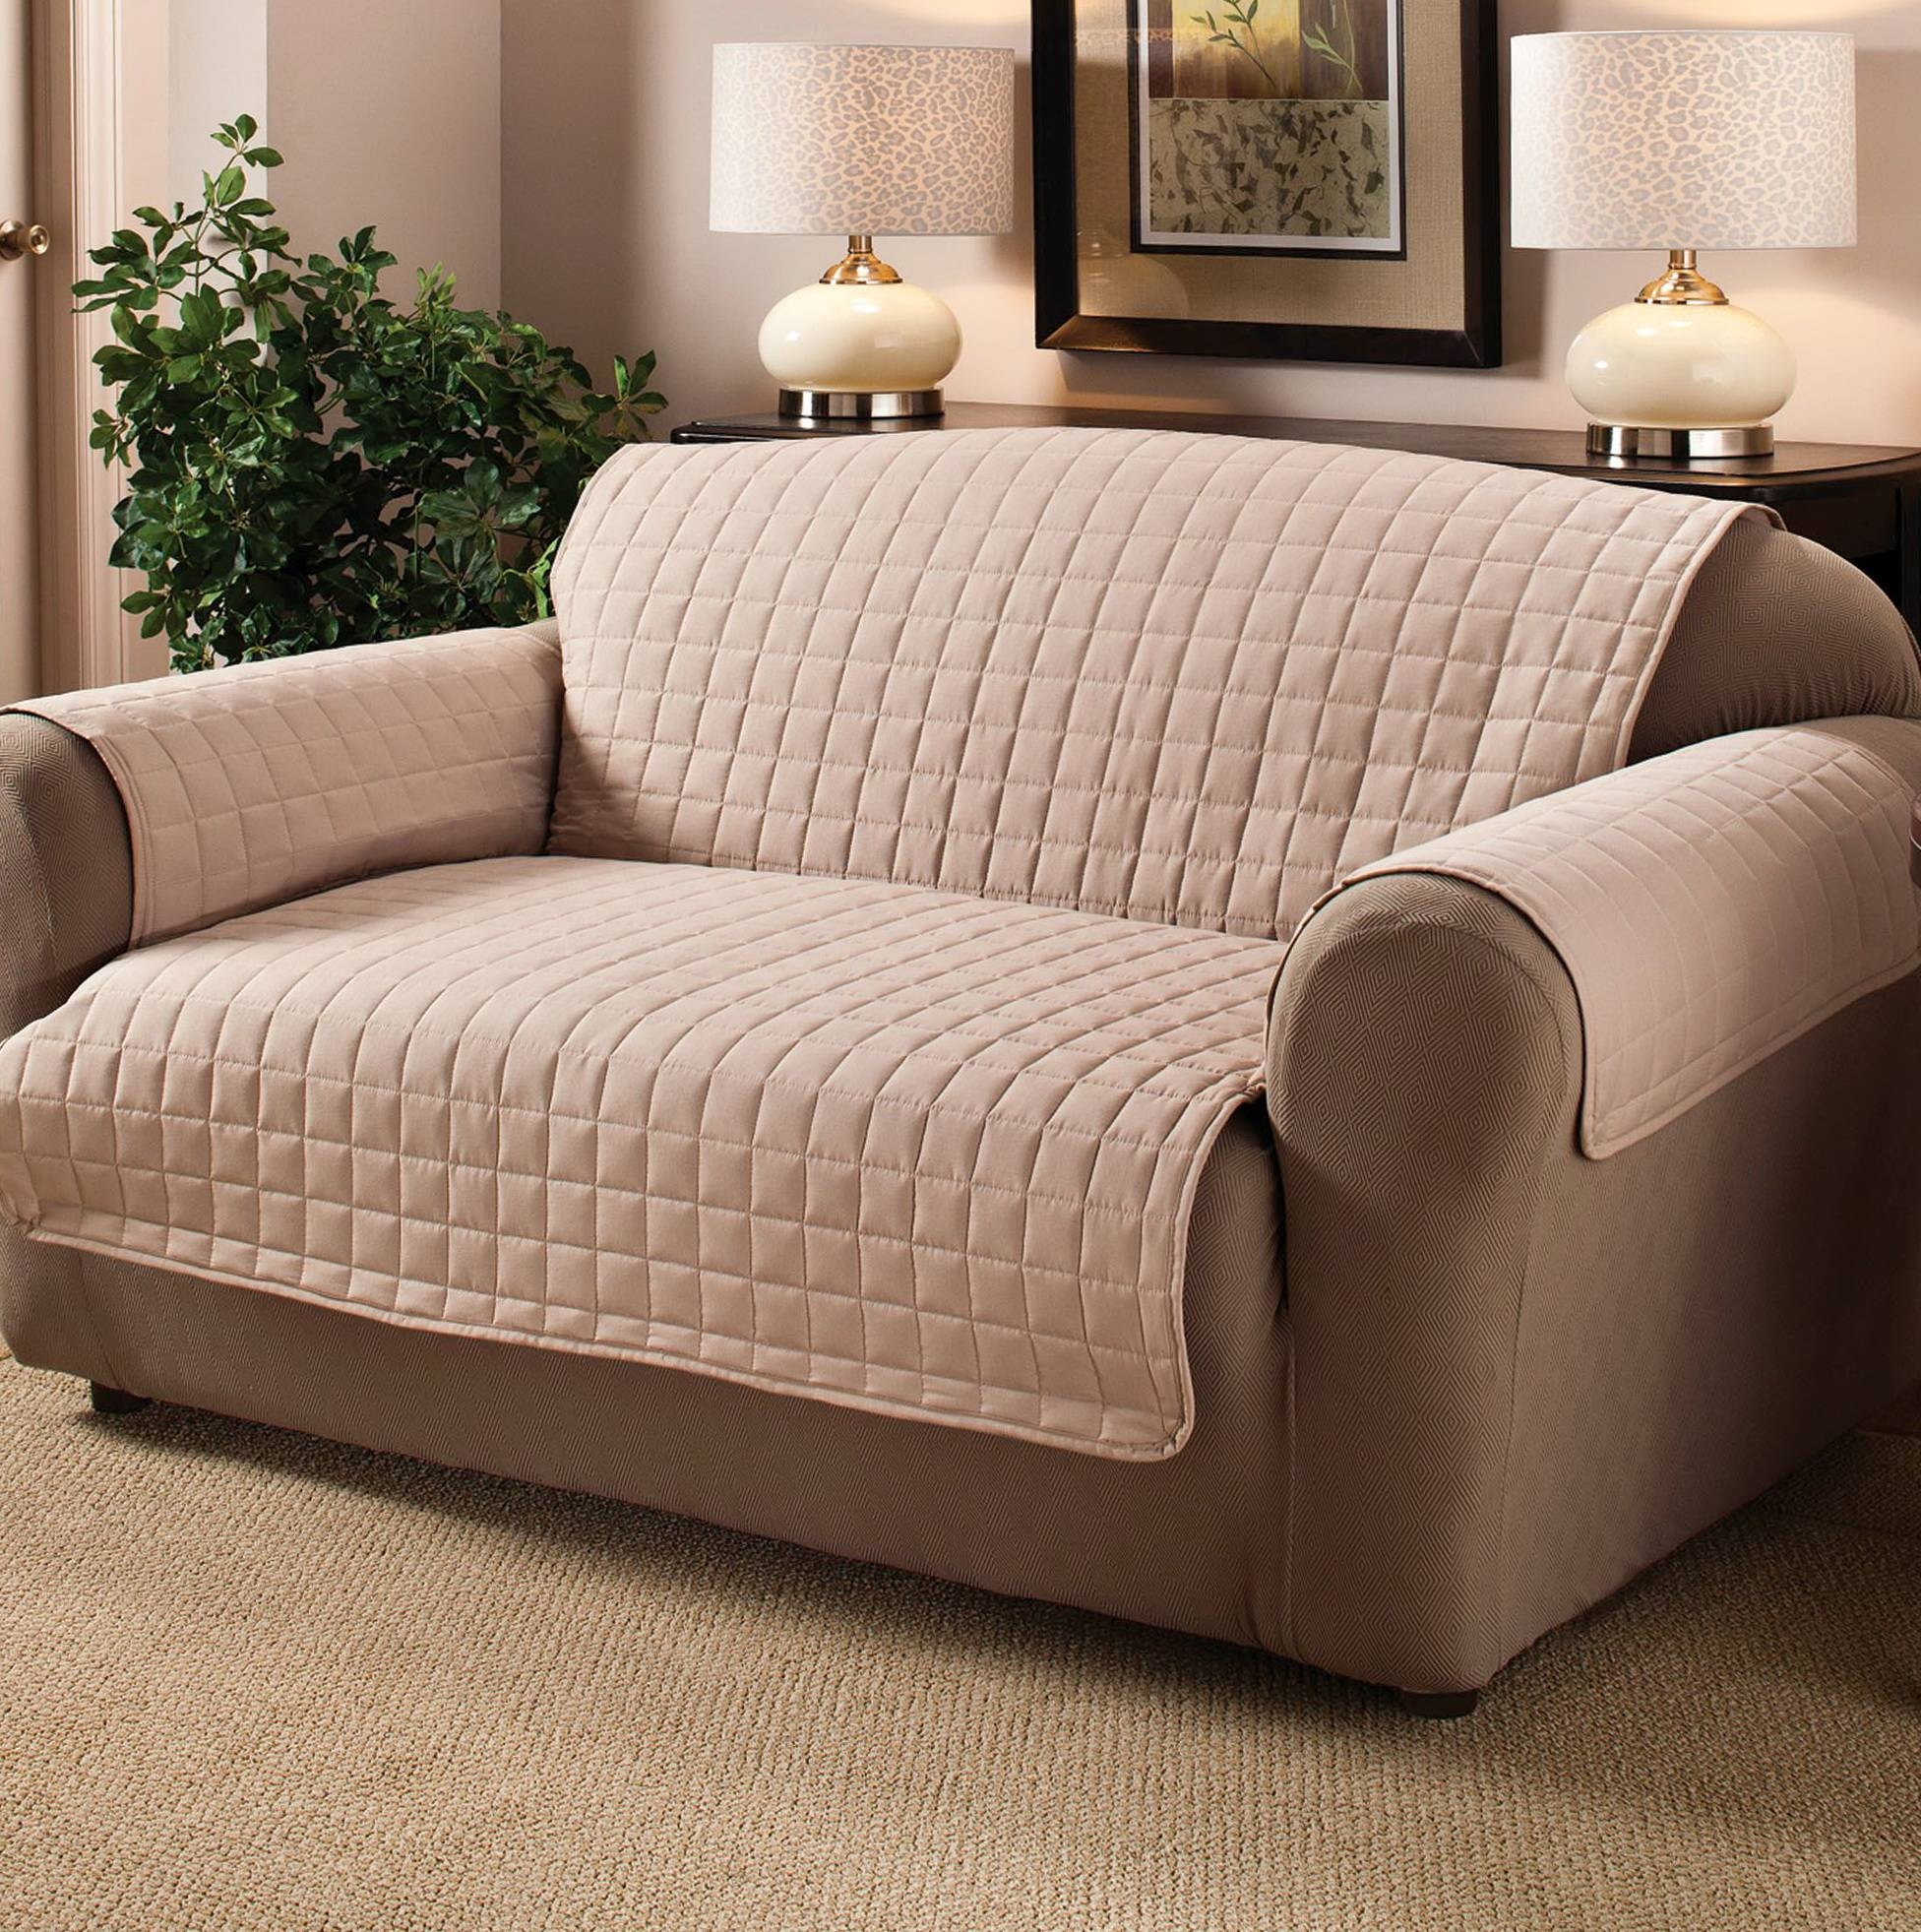 Sofas Center : Chaise Lounge Sofa Covers Sectional Cushion And For Chaise Sofa Covers (View 22 of 30)